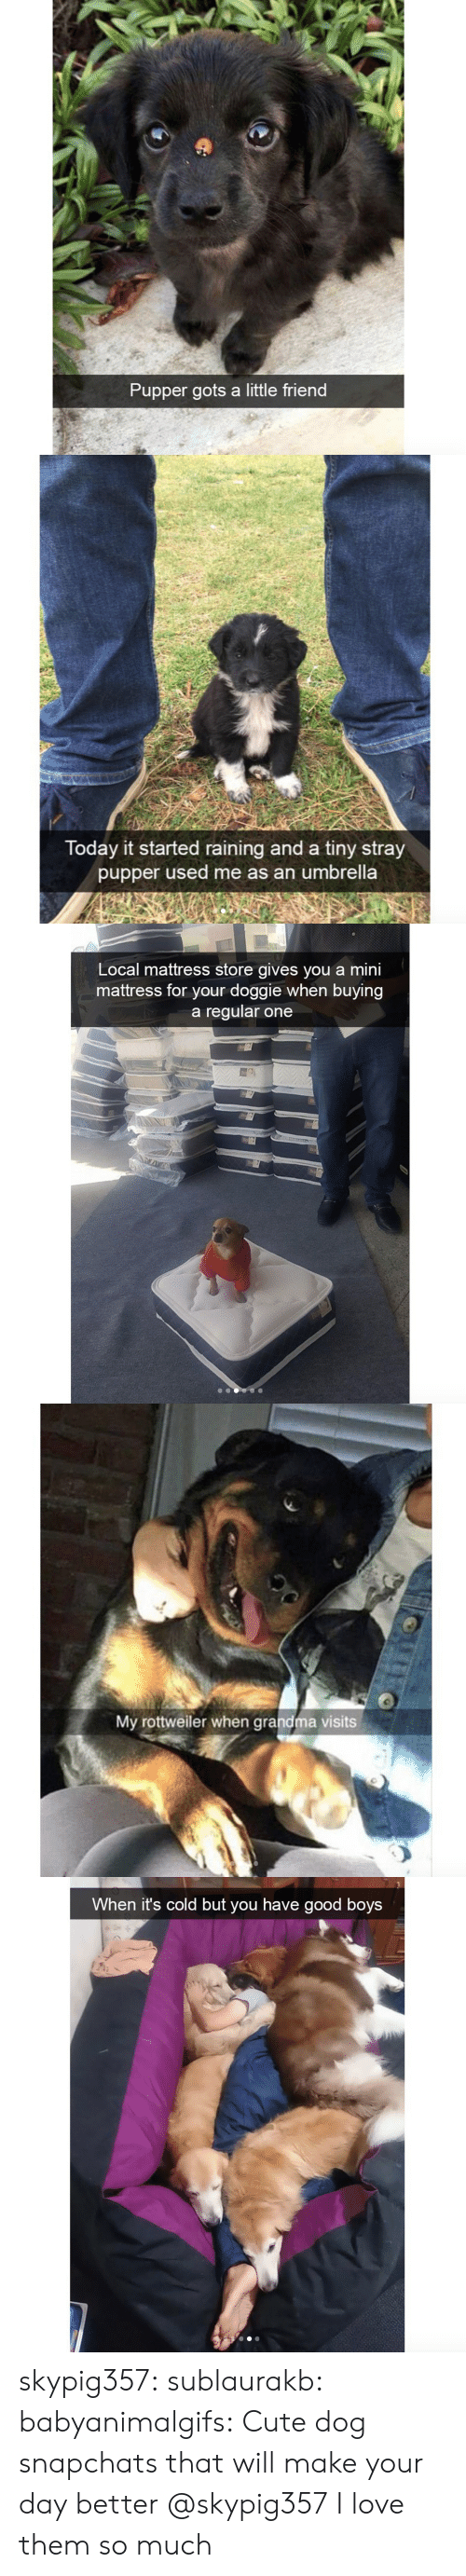 Cute, Grandma, and Love: Pupper gots a little friend   Today it started raining and a tiny stray  pupper used me as an umbrella   Local mattress store gives you a mini  mattress for your doggie when buying  a regular one   My rottweiler when grandma visits   When it's cold but you have good boys skypig357: sublaurakb:   babyanimalgifs:  Cute dog snapchats that will make your day better  @skypig357    I love them so much